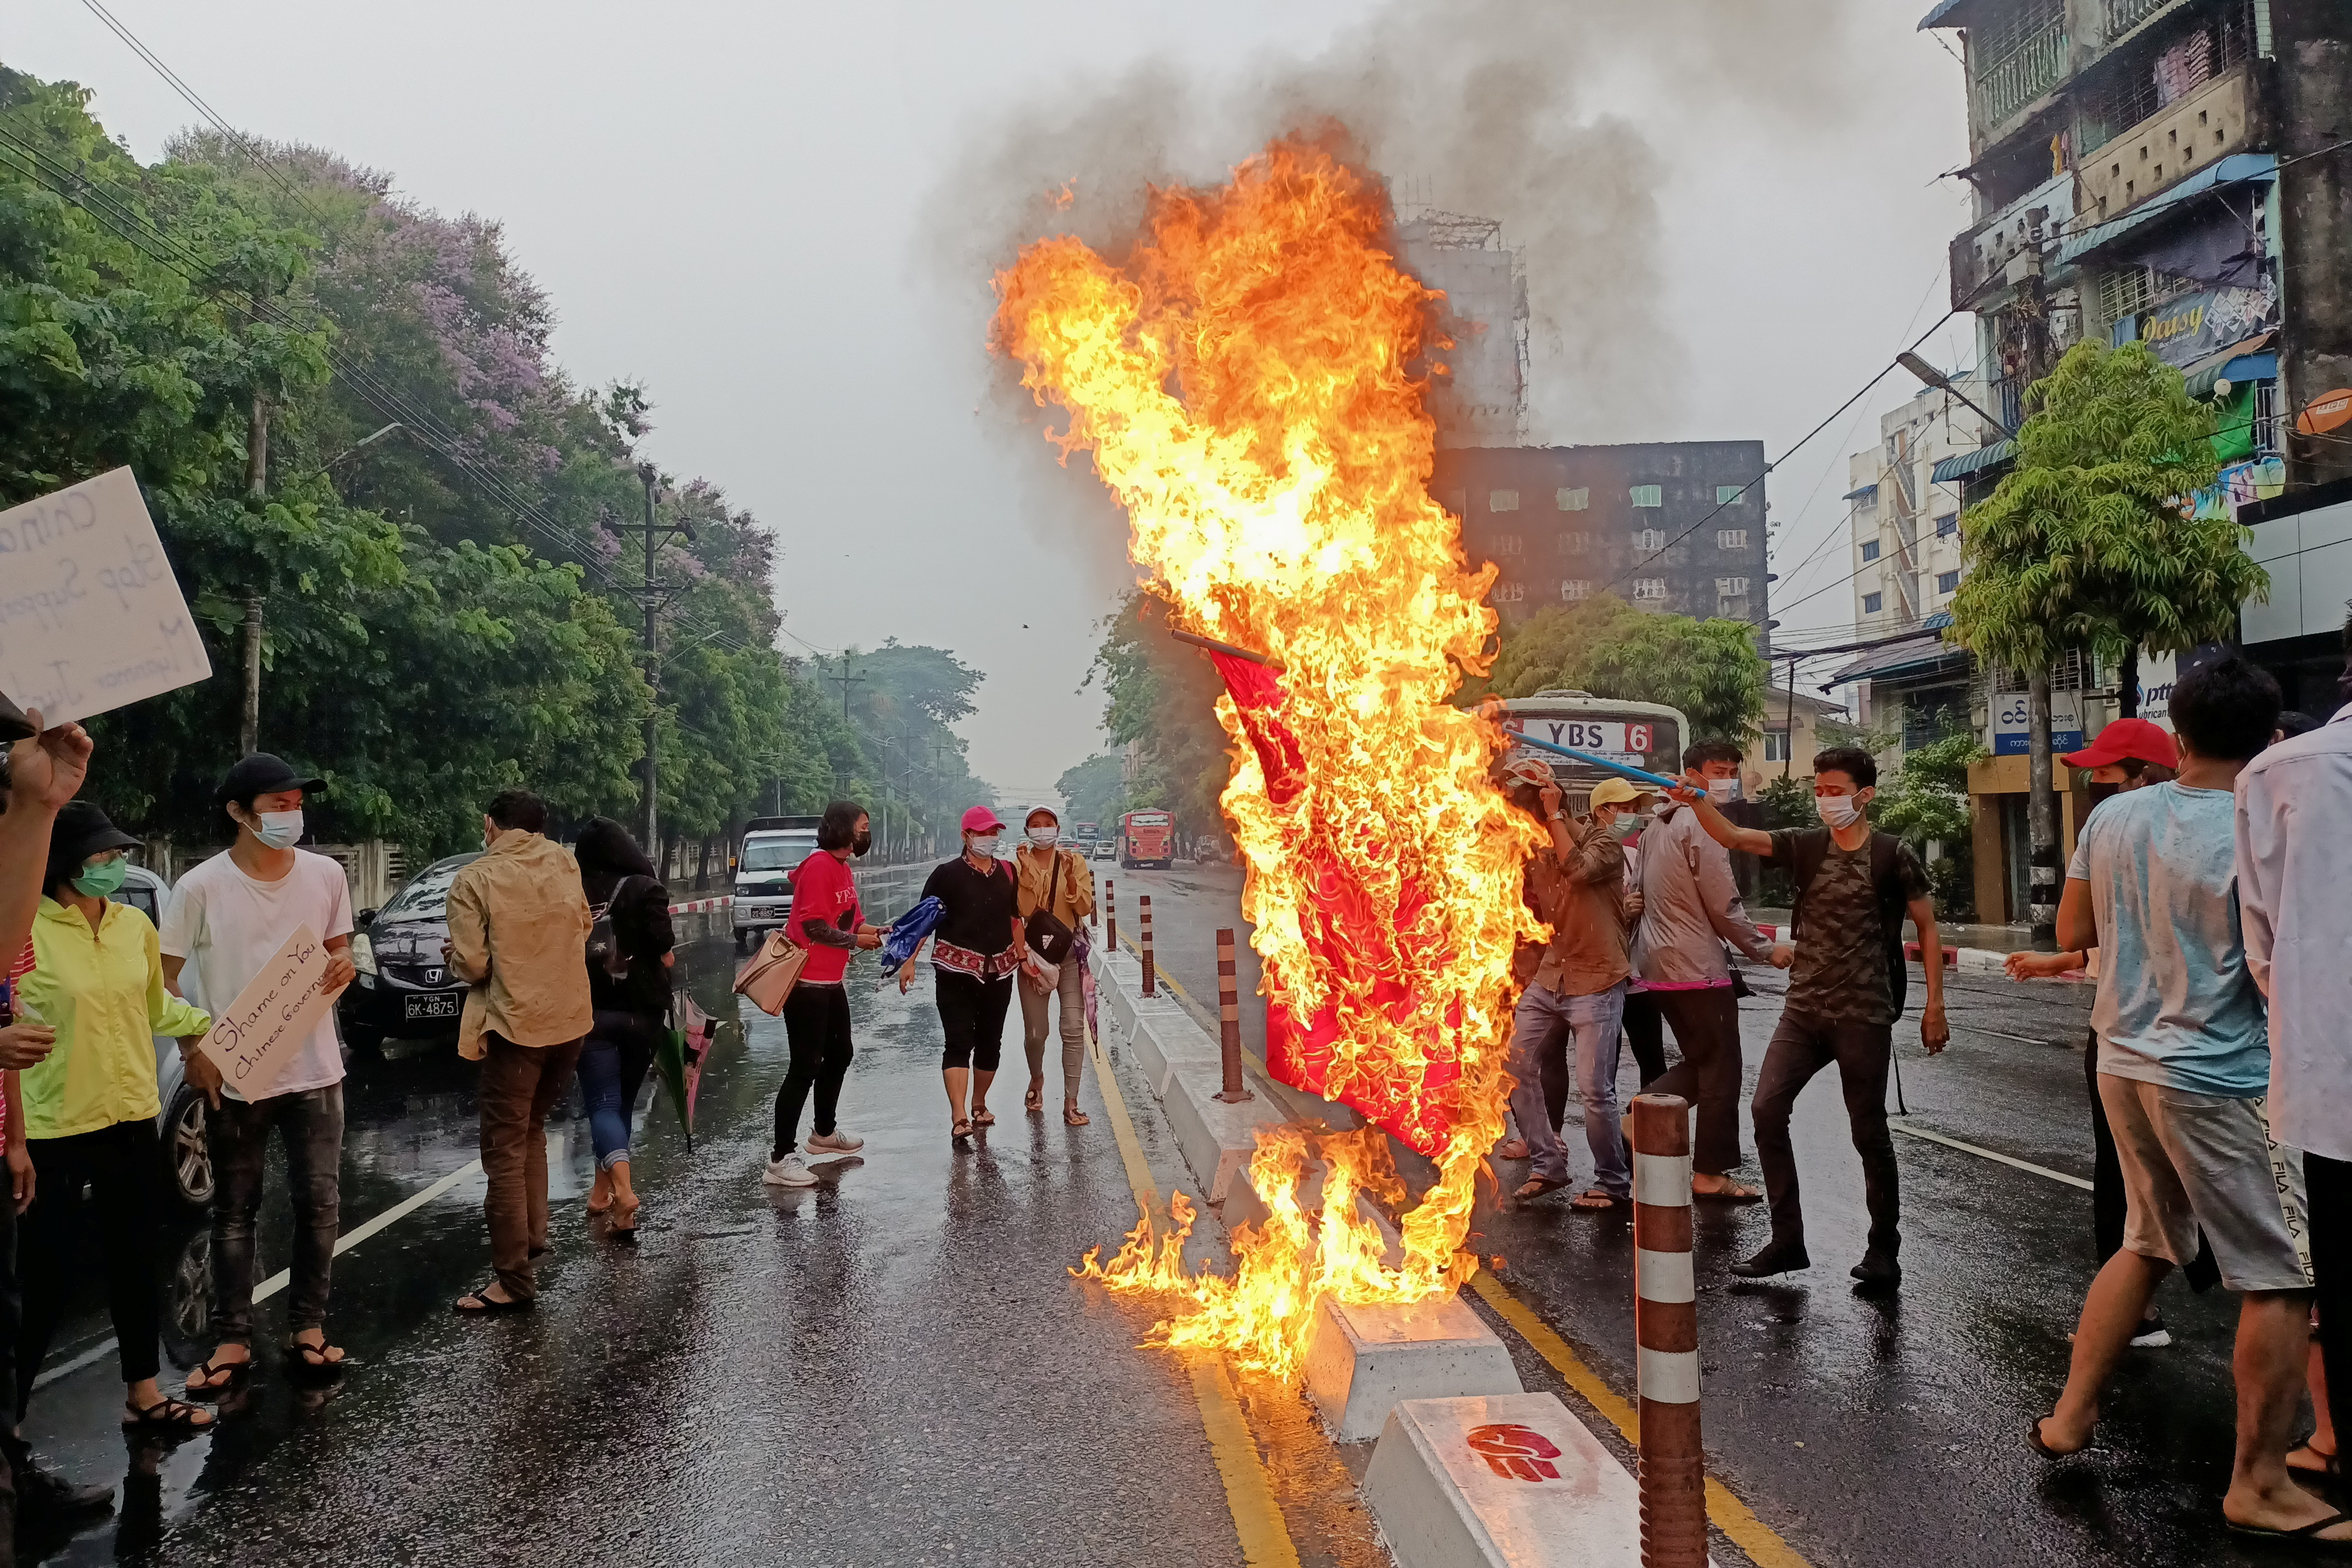 Anti-coup protesters burn a Chinese flag in Yangon, Myanmar  April 5, 2021. REUTERS/Stringer